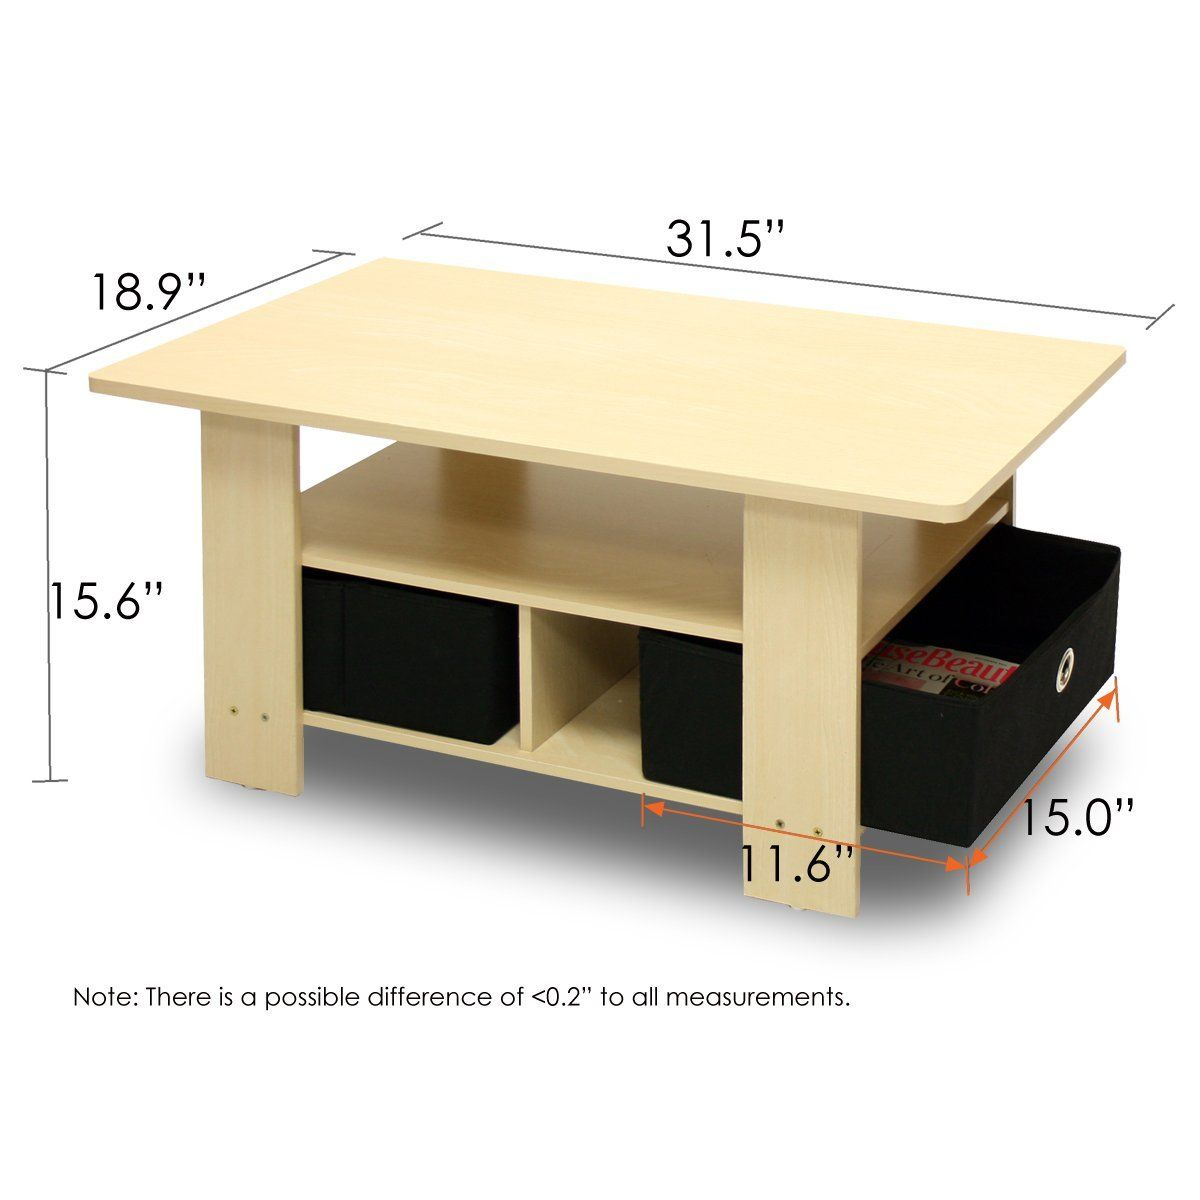 Furniture How To Make The Table Better Look Consider Coffee Table Dimension Creating Beautiful Coffee Table Coffee Table With Storage Coffee Table Dimensions